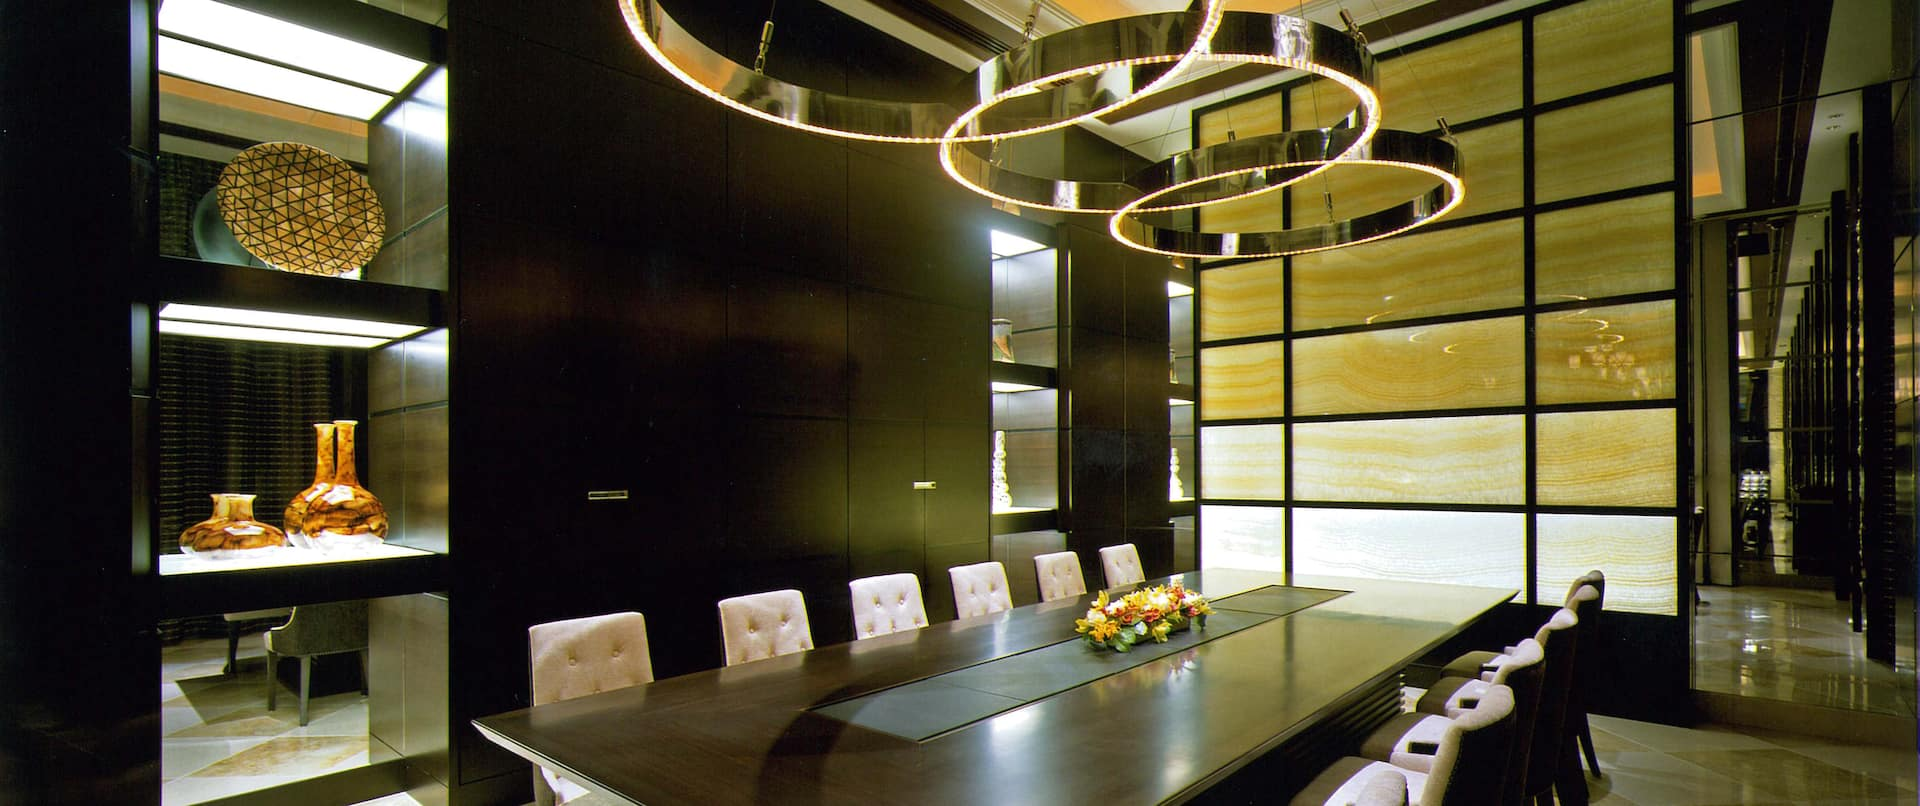 View of Meeting Room Interior With Mirrored Cabinet, Decorative Lighting, and Seating for 12 at Boardroom Table